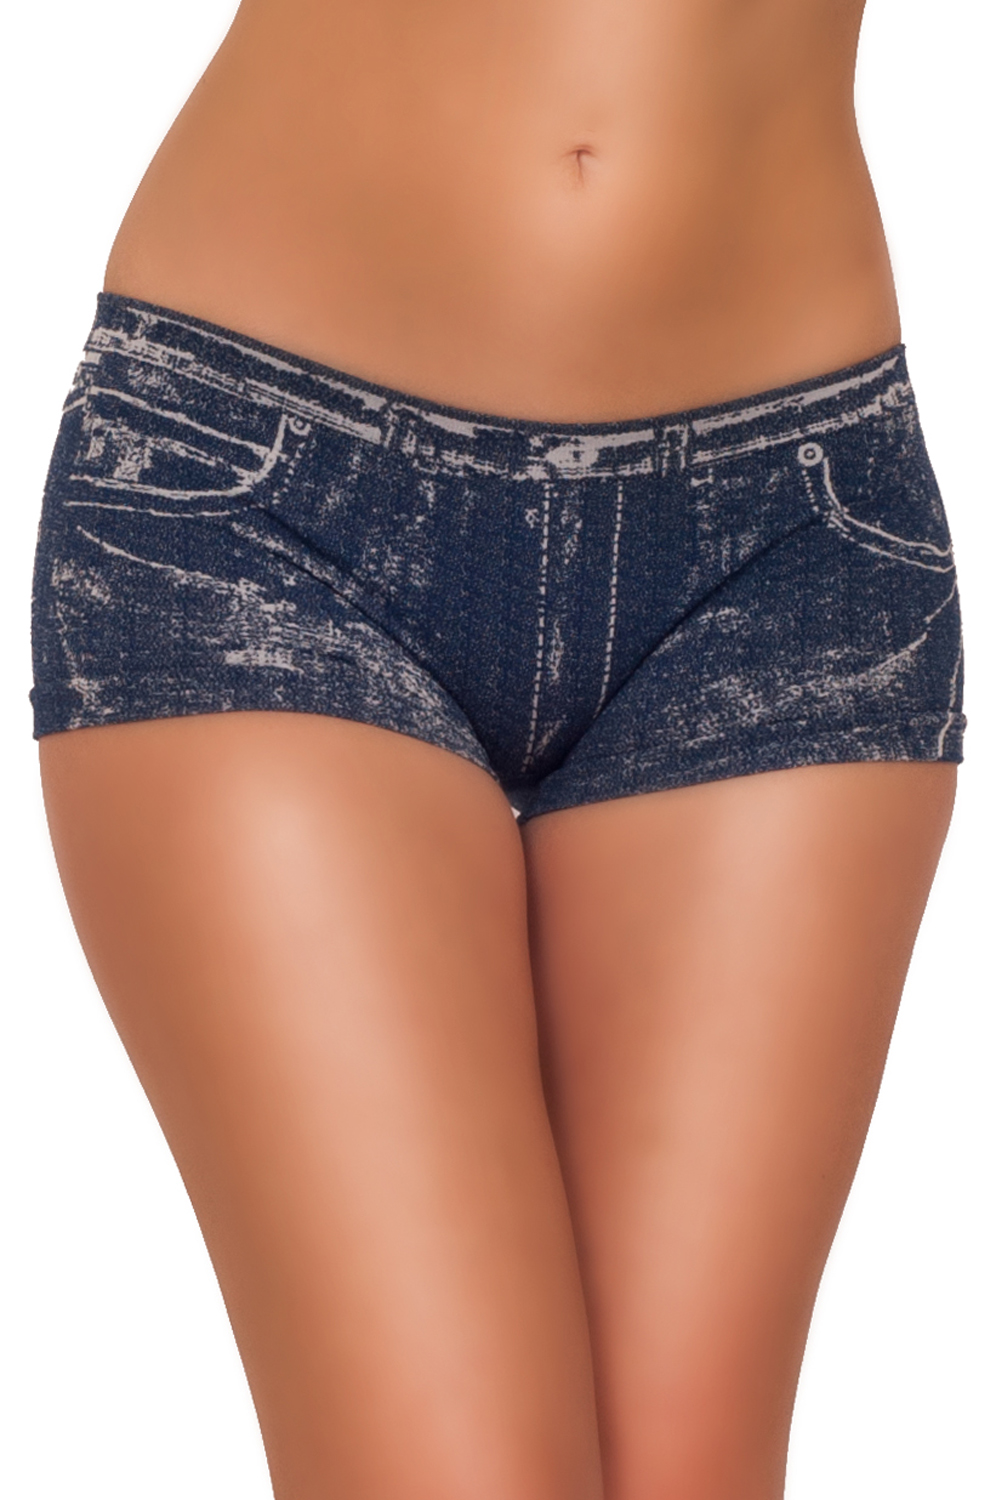 Spandex Shorts. Showing 48 of results that match your query. Search Product Result. Product - Time and Tru Women's Bermuda Shorts. Clearance. Product Image. Price $ 6. Product Title. Time and Tru Women's Bermuda Shorts. Product - Time and True Women's Denim Shorts.